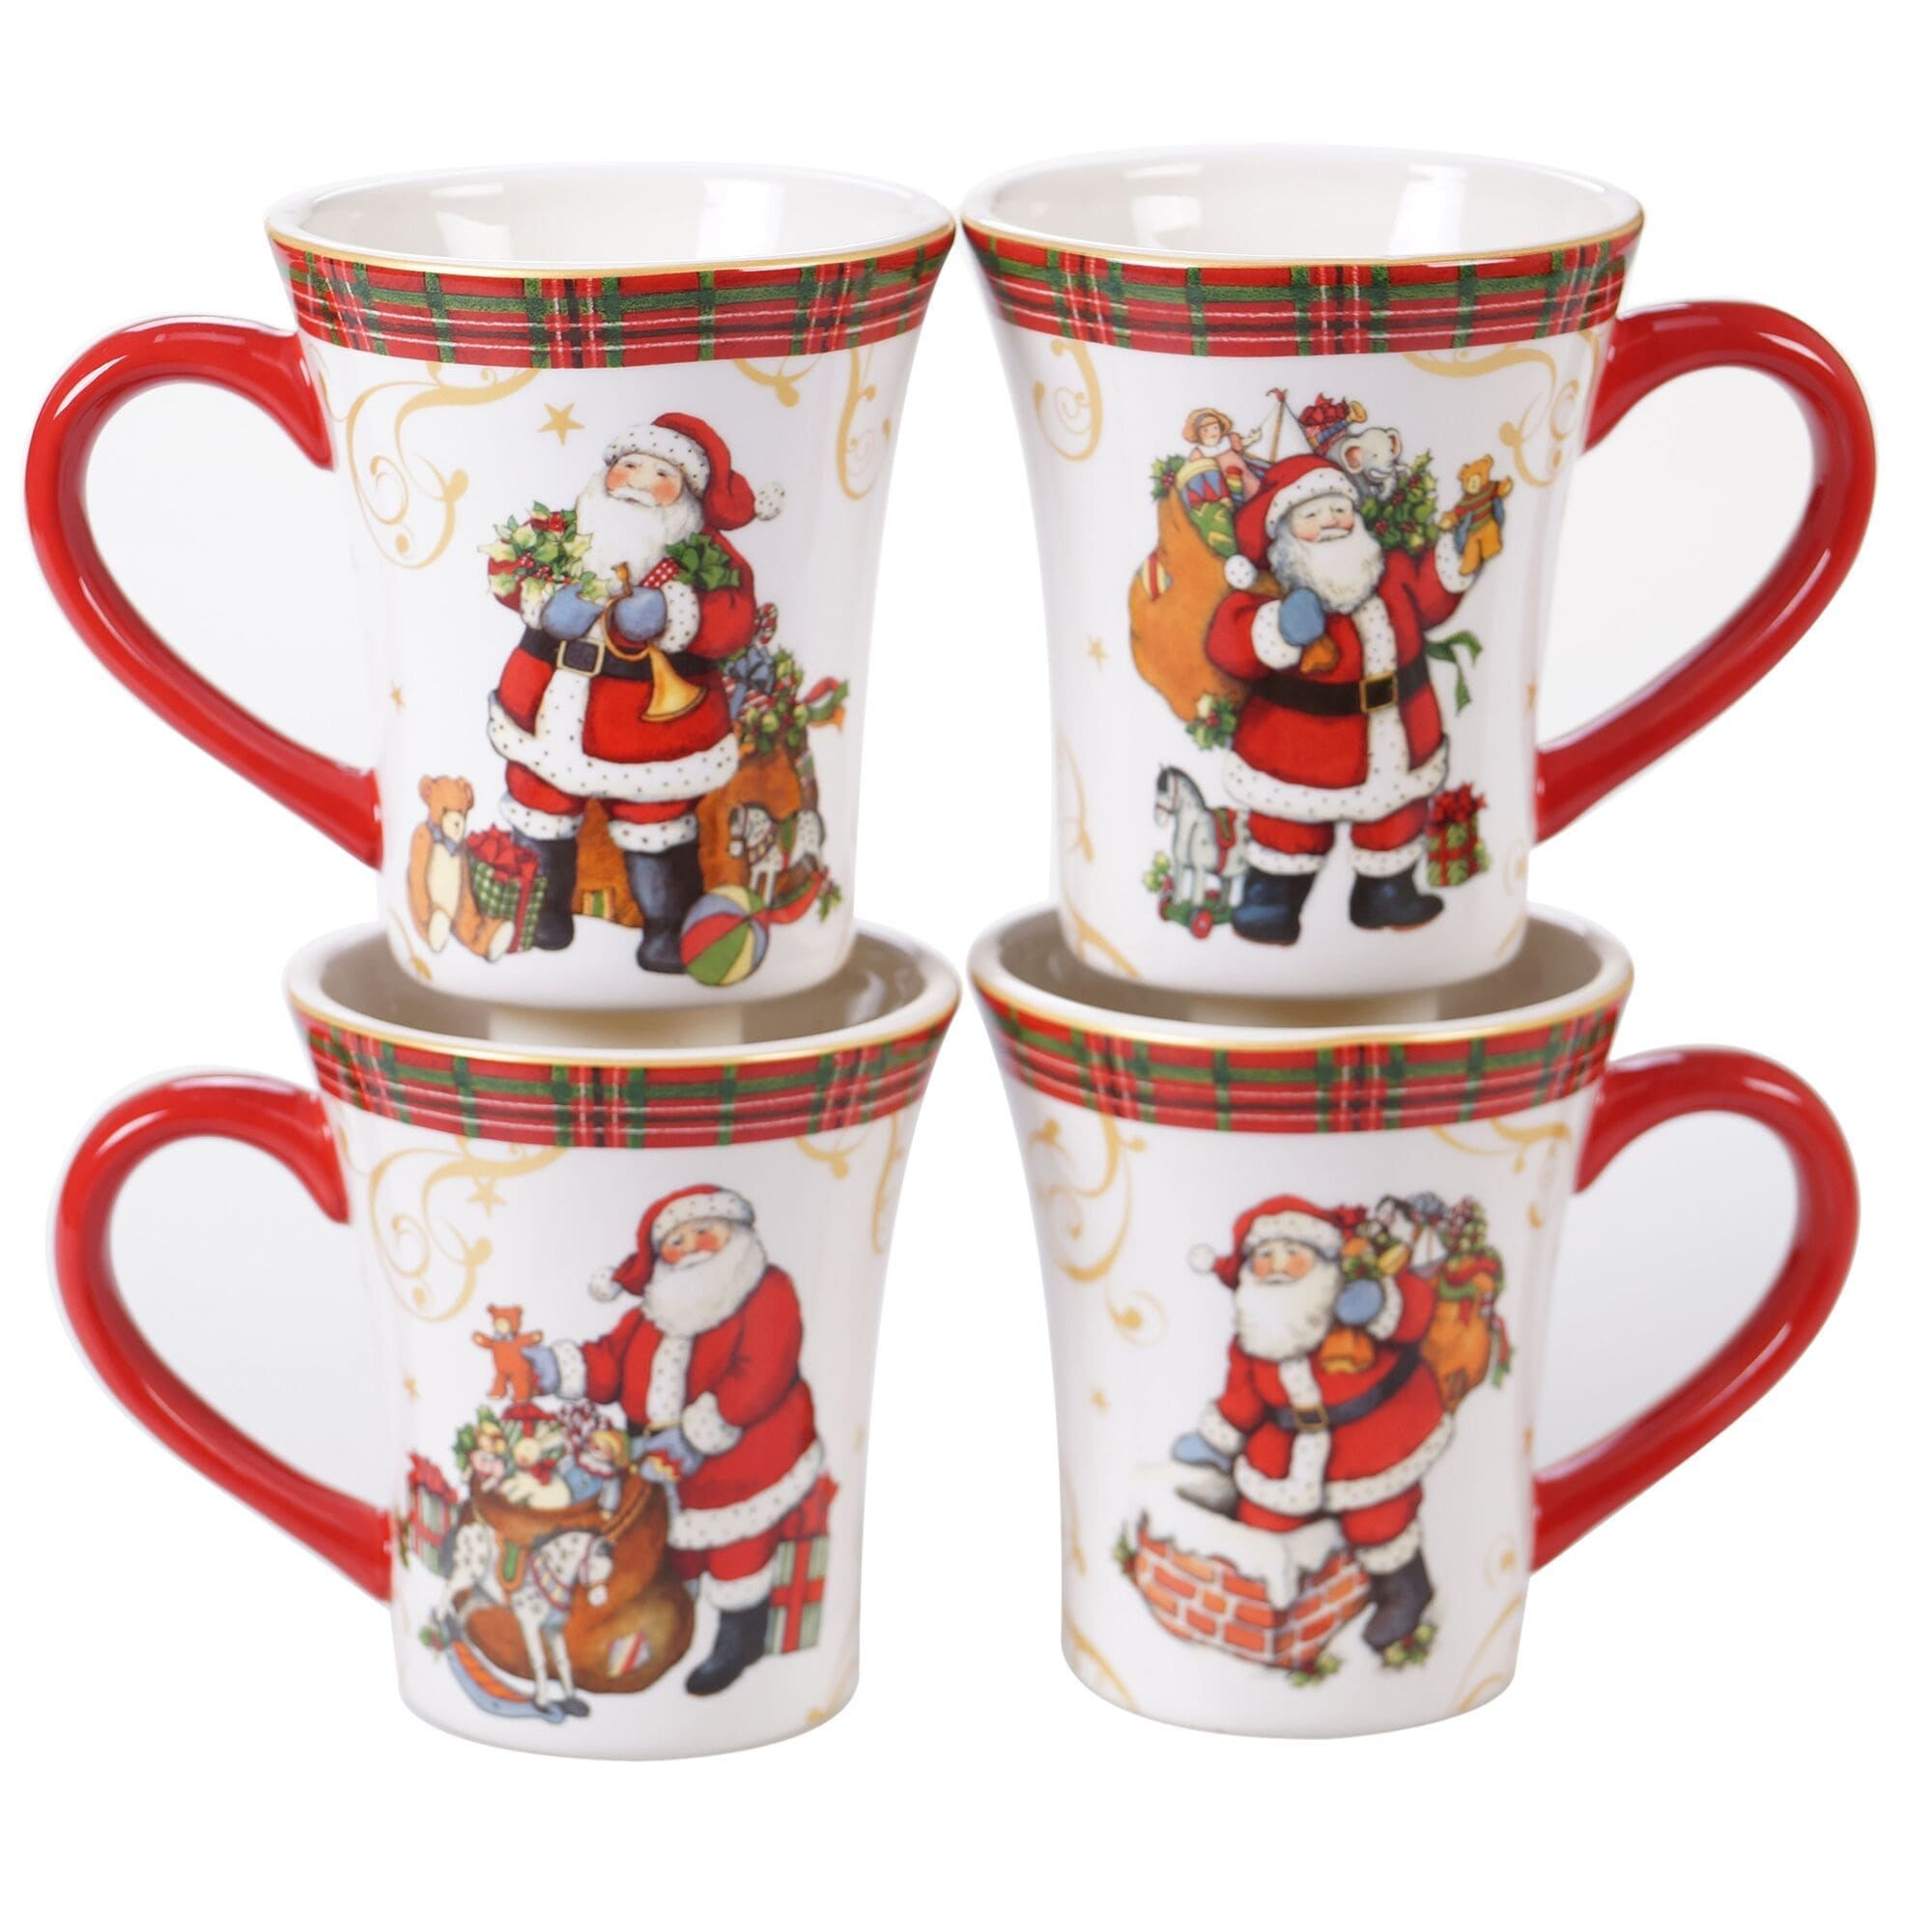 4pc Red And White Traditional Style Santa Mug Set 5 5 Overstock 31710675